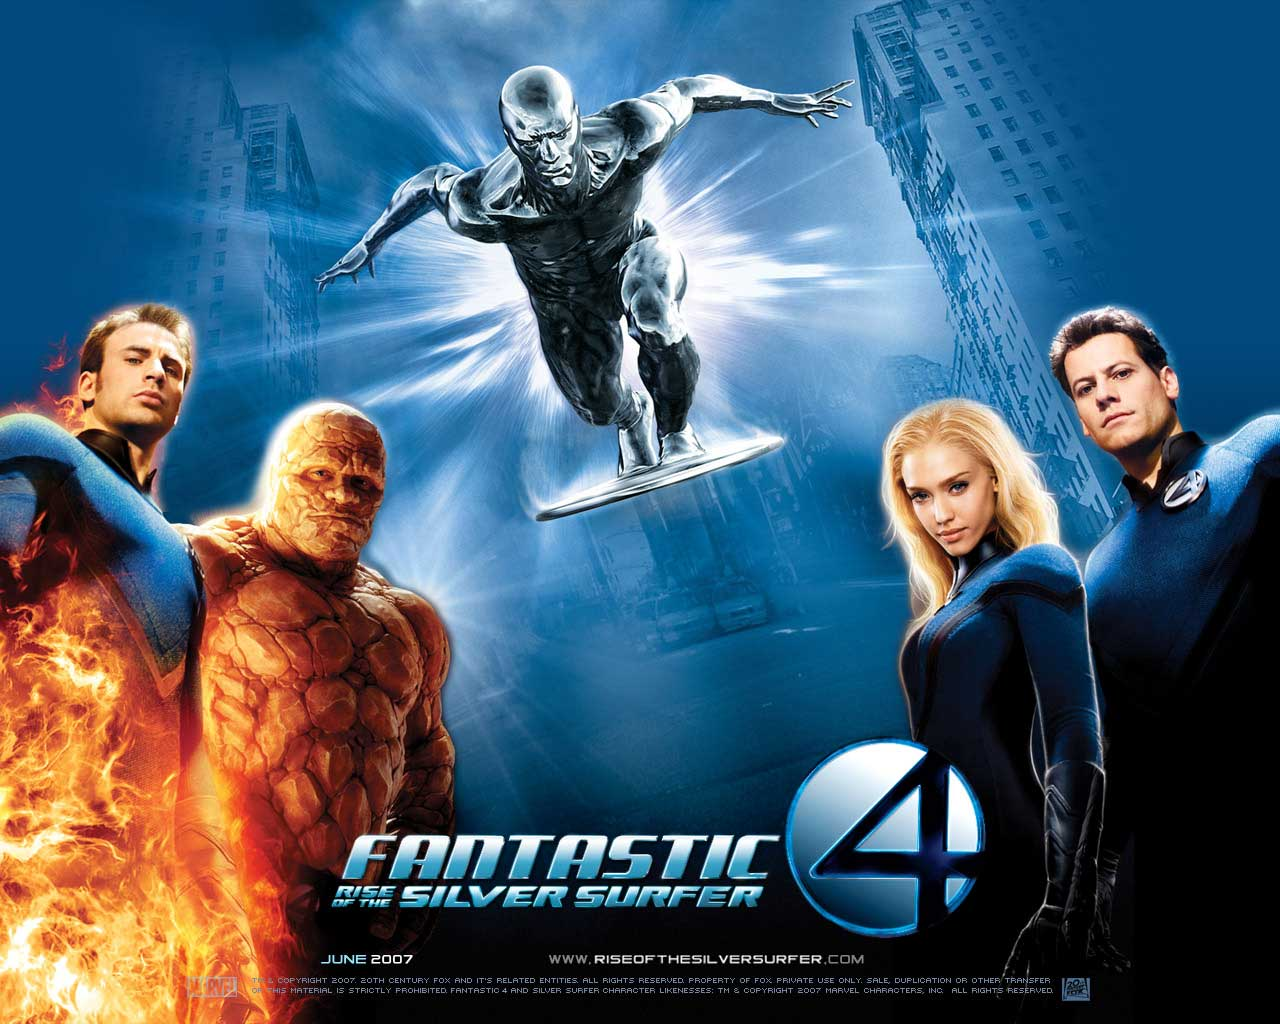 Fantastic Four Ii Rise Of The Silver Surfer Tamil Dubbed 123